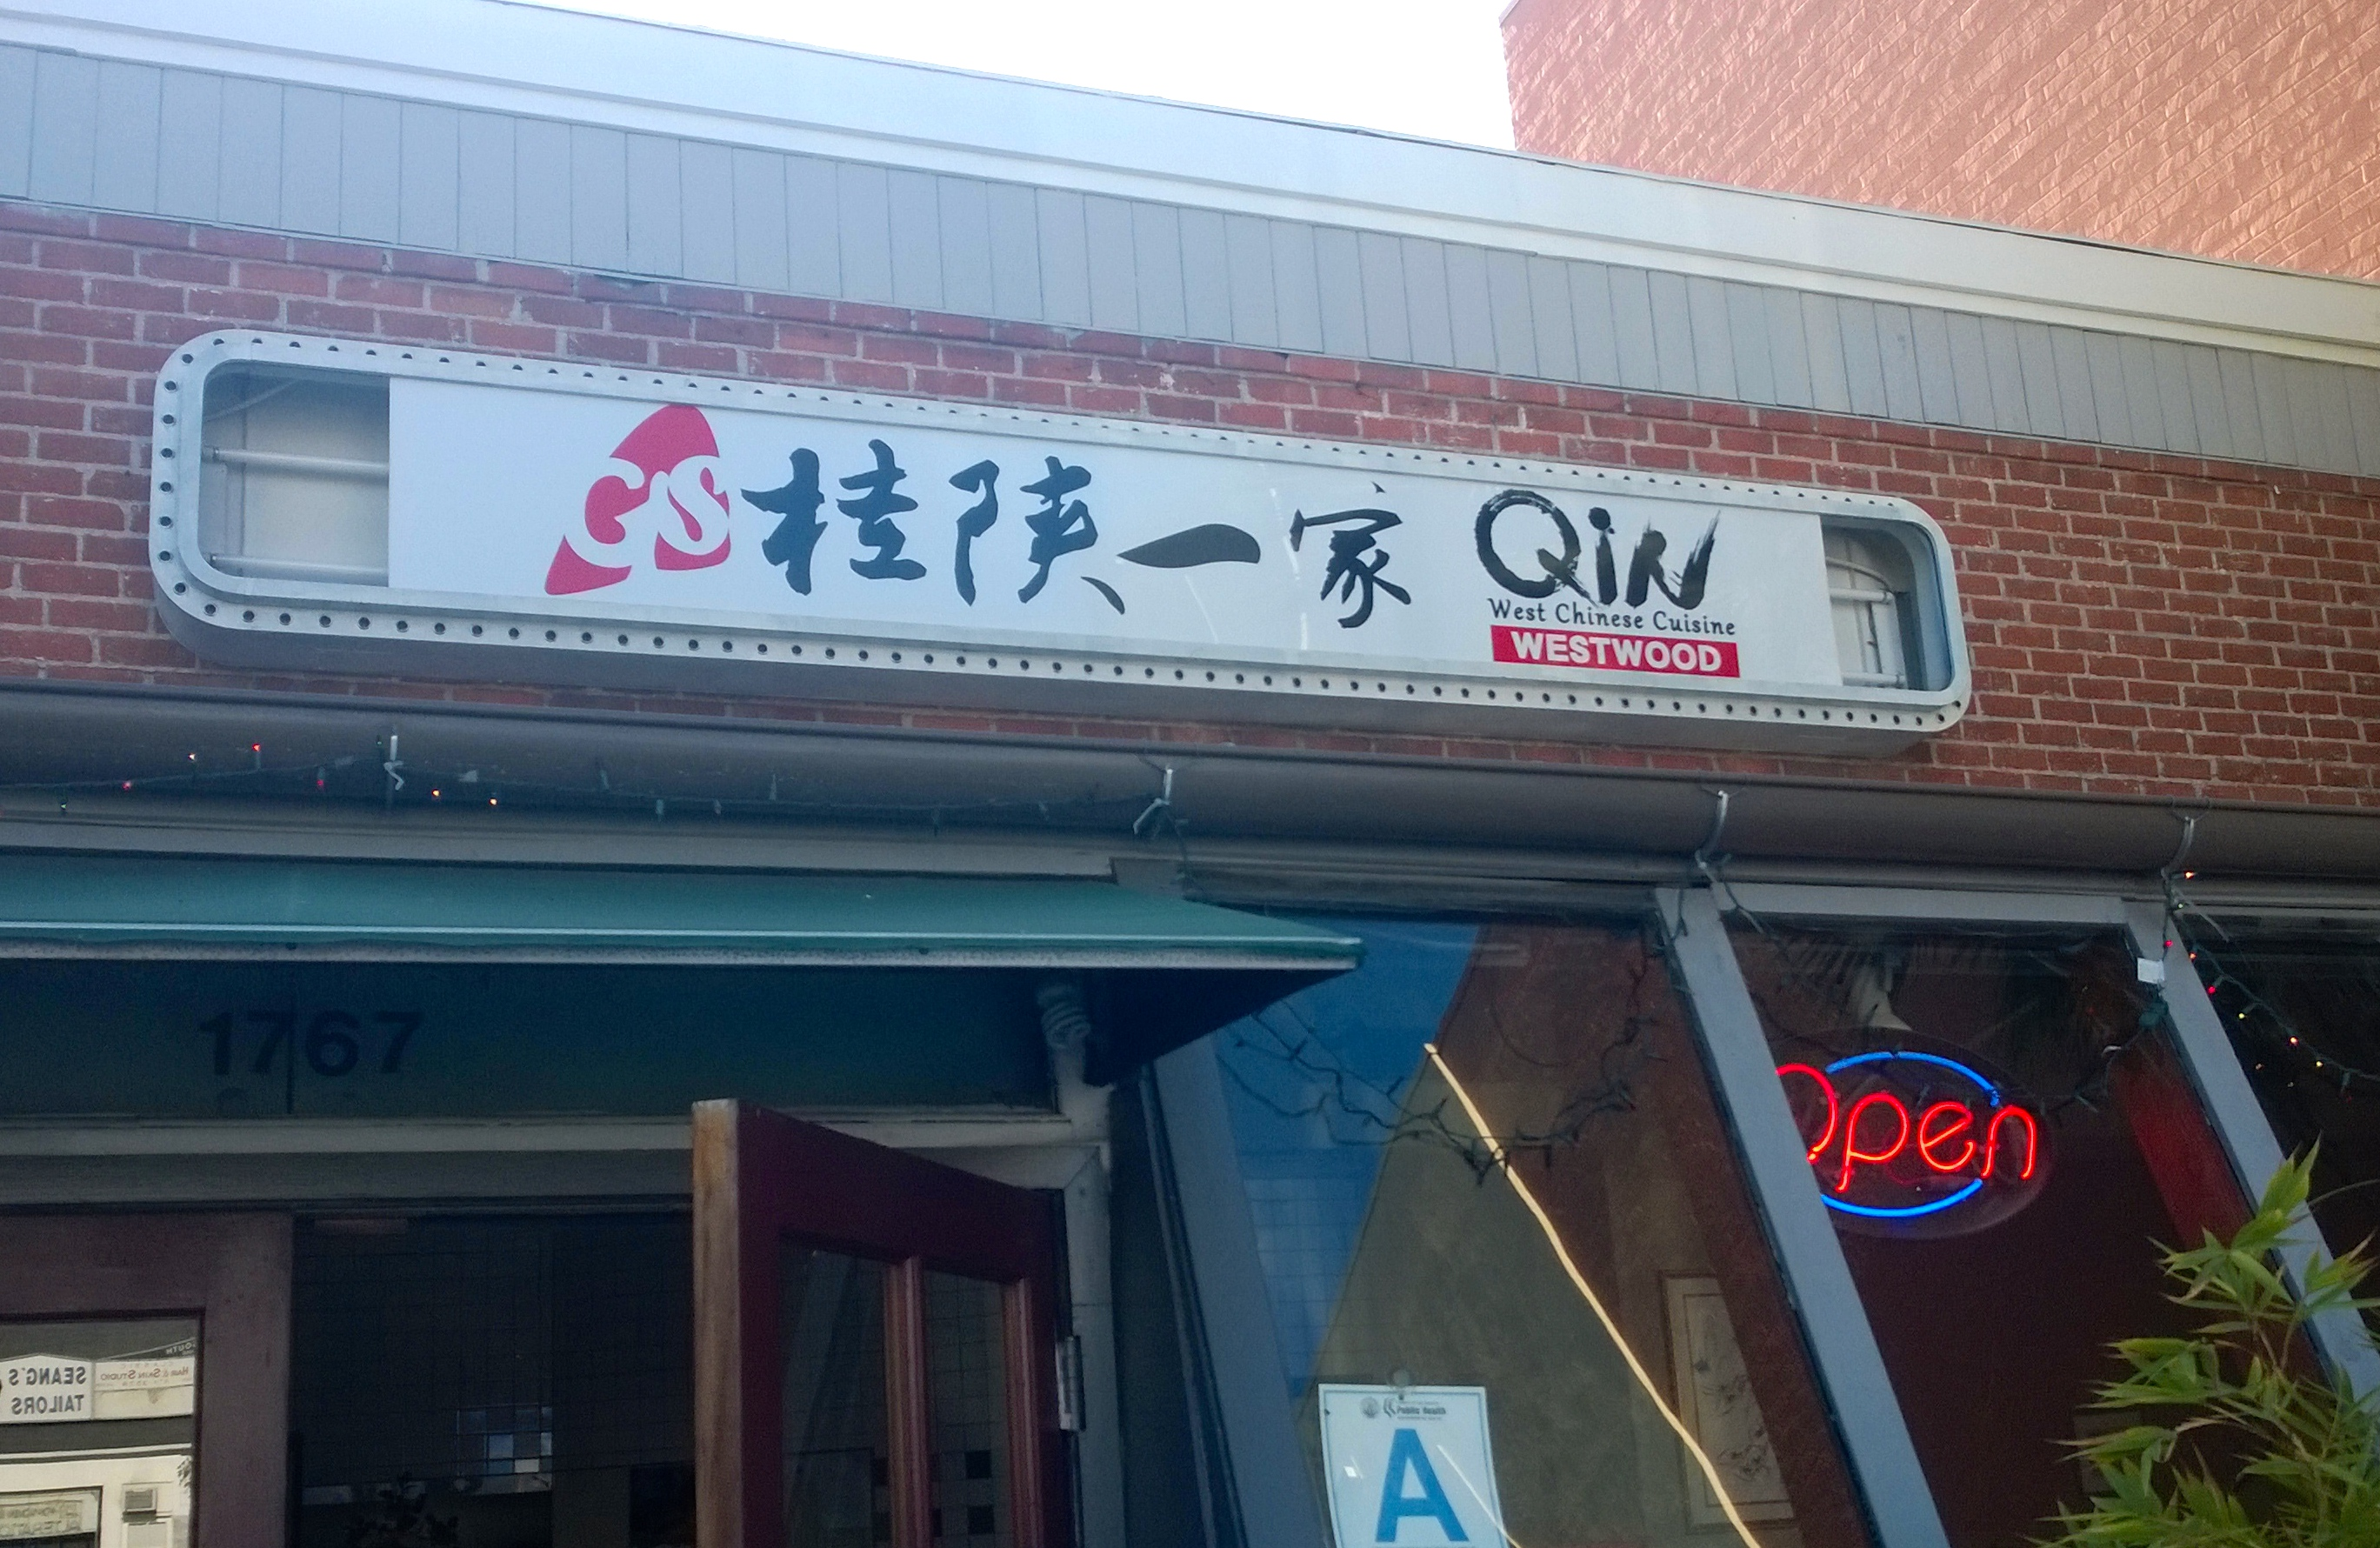 Qin Restaurant Unleashes Shaanxi Cuisine to the Chinese Food Desert of West LA